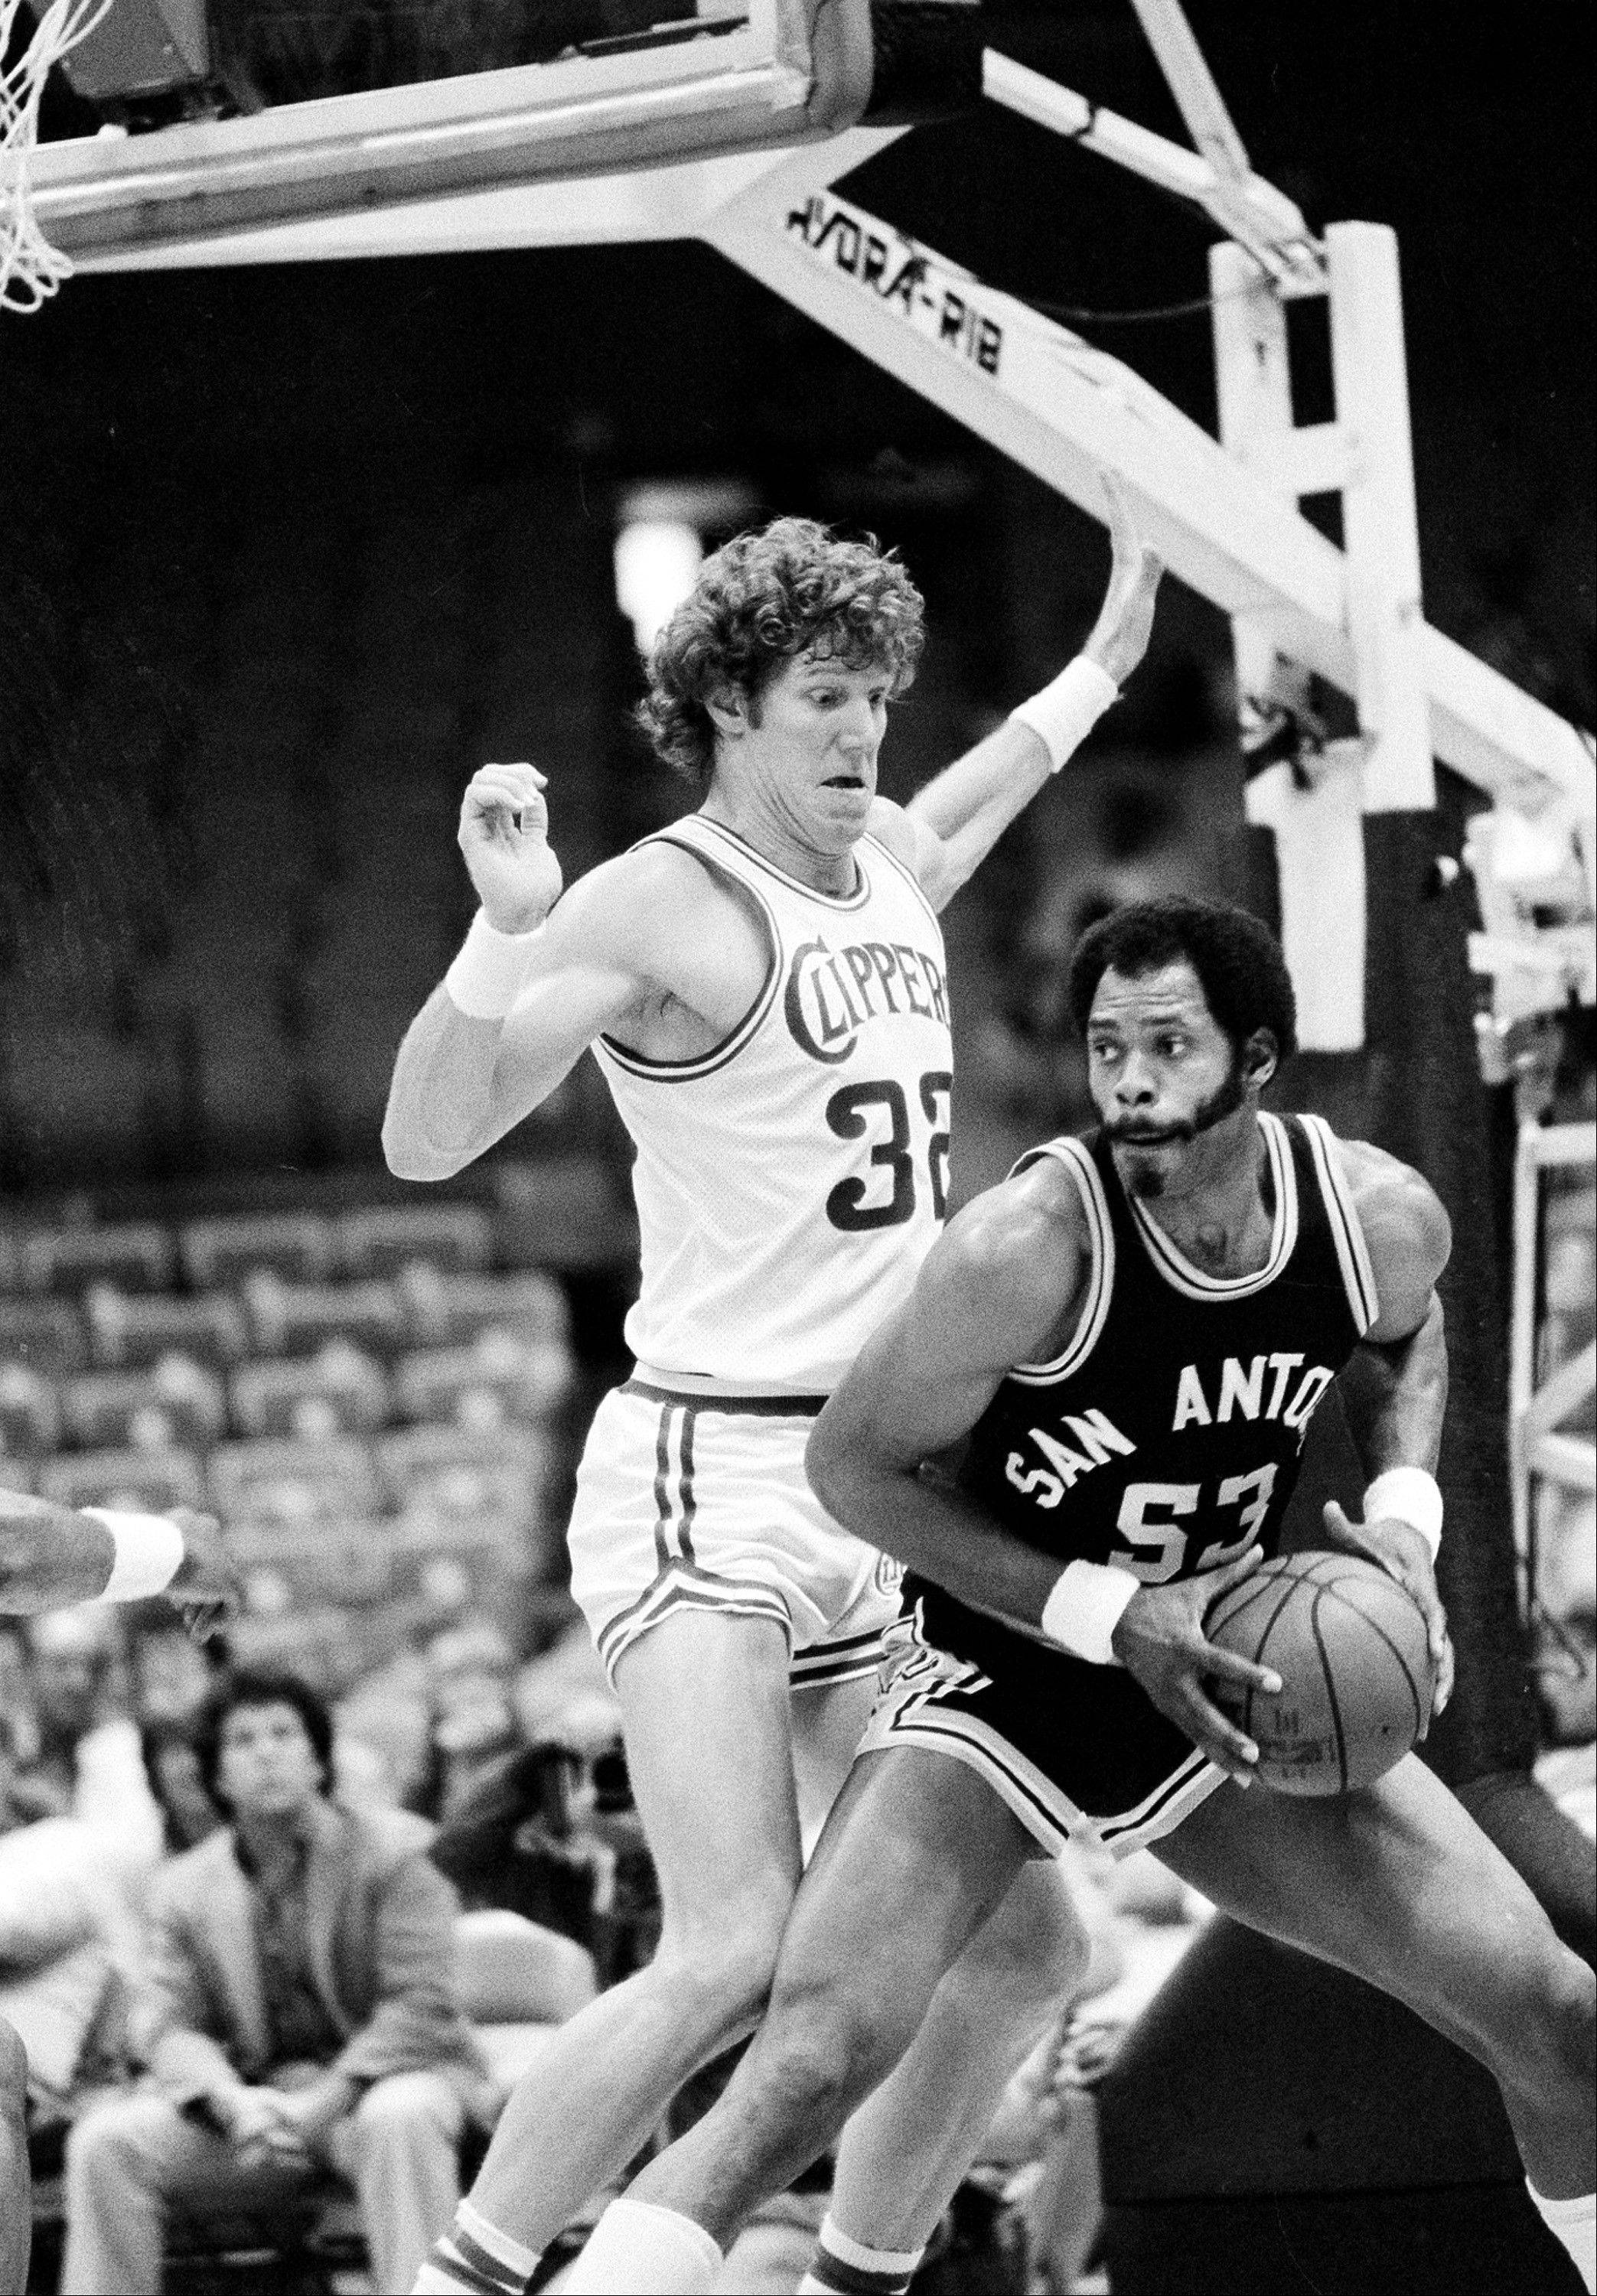 Artis Gilmore of the San Antonio Spurs gets ready to drive to the basket against Bill Walton of the San Diego Clippers in San Diego on March 5, 1983. Gilmore scored 19 points for the Spurs victory over the Clippers, 107-99.